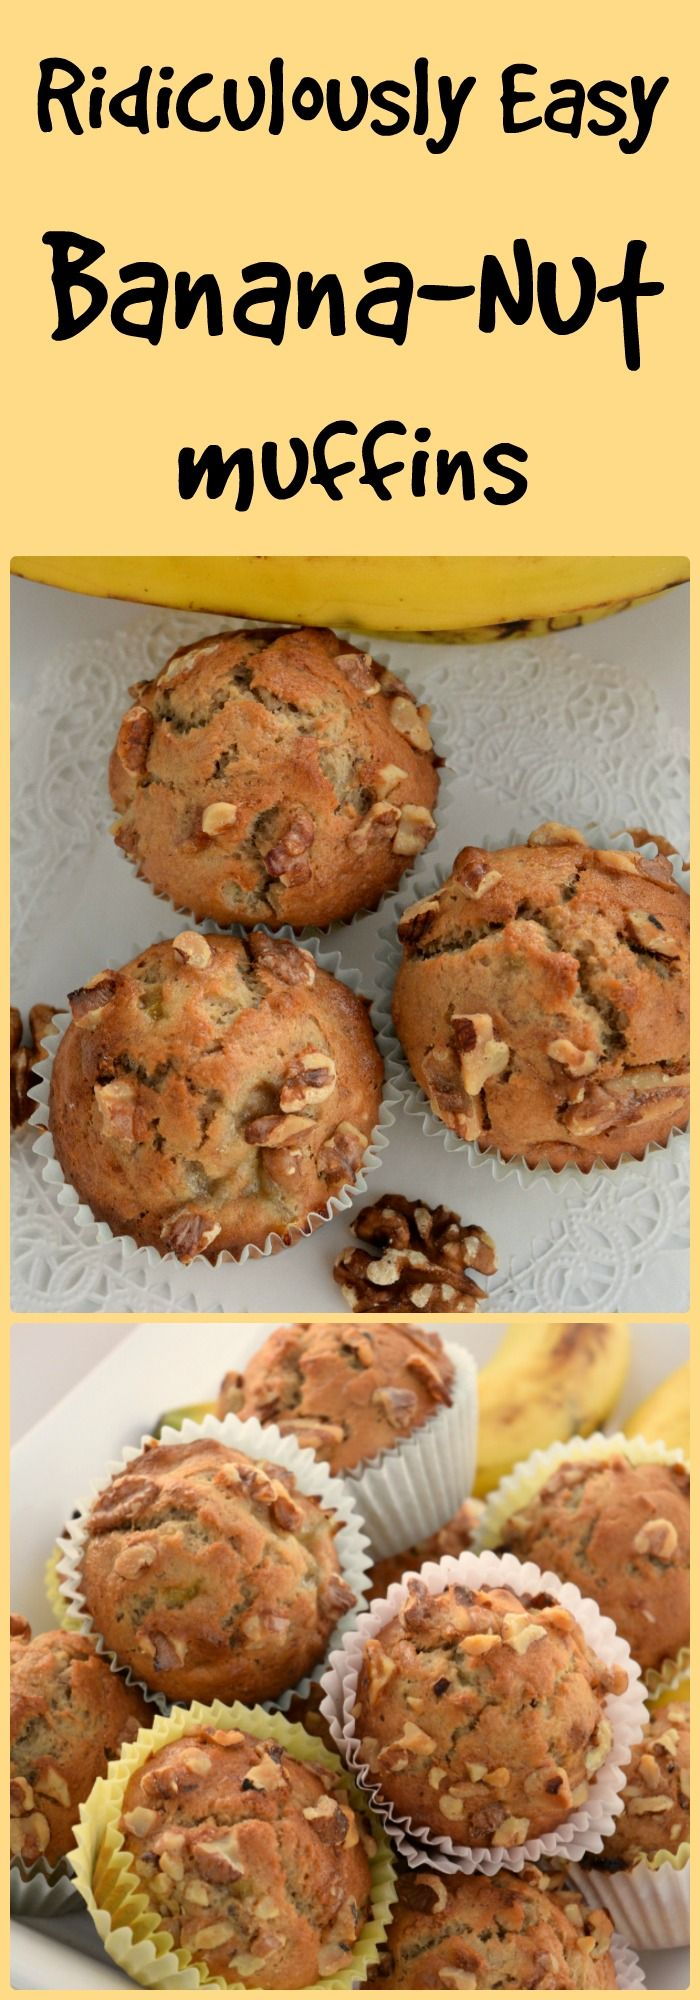 These Banana Nut muffins are packed with a rich banana taste along with a crunchy walnuts. deliciously moist, lightly sweetened and tasty to the every last bite.""